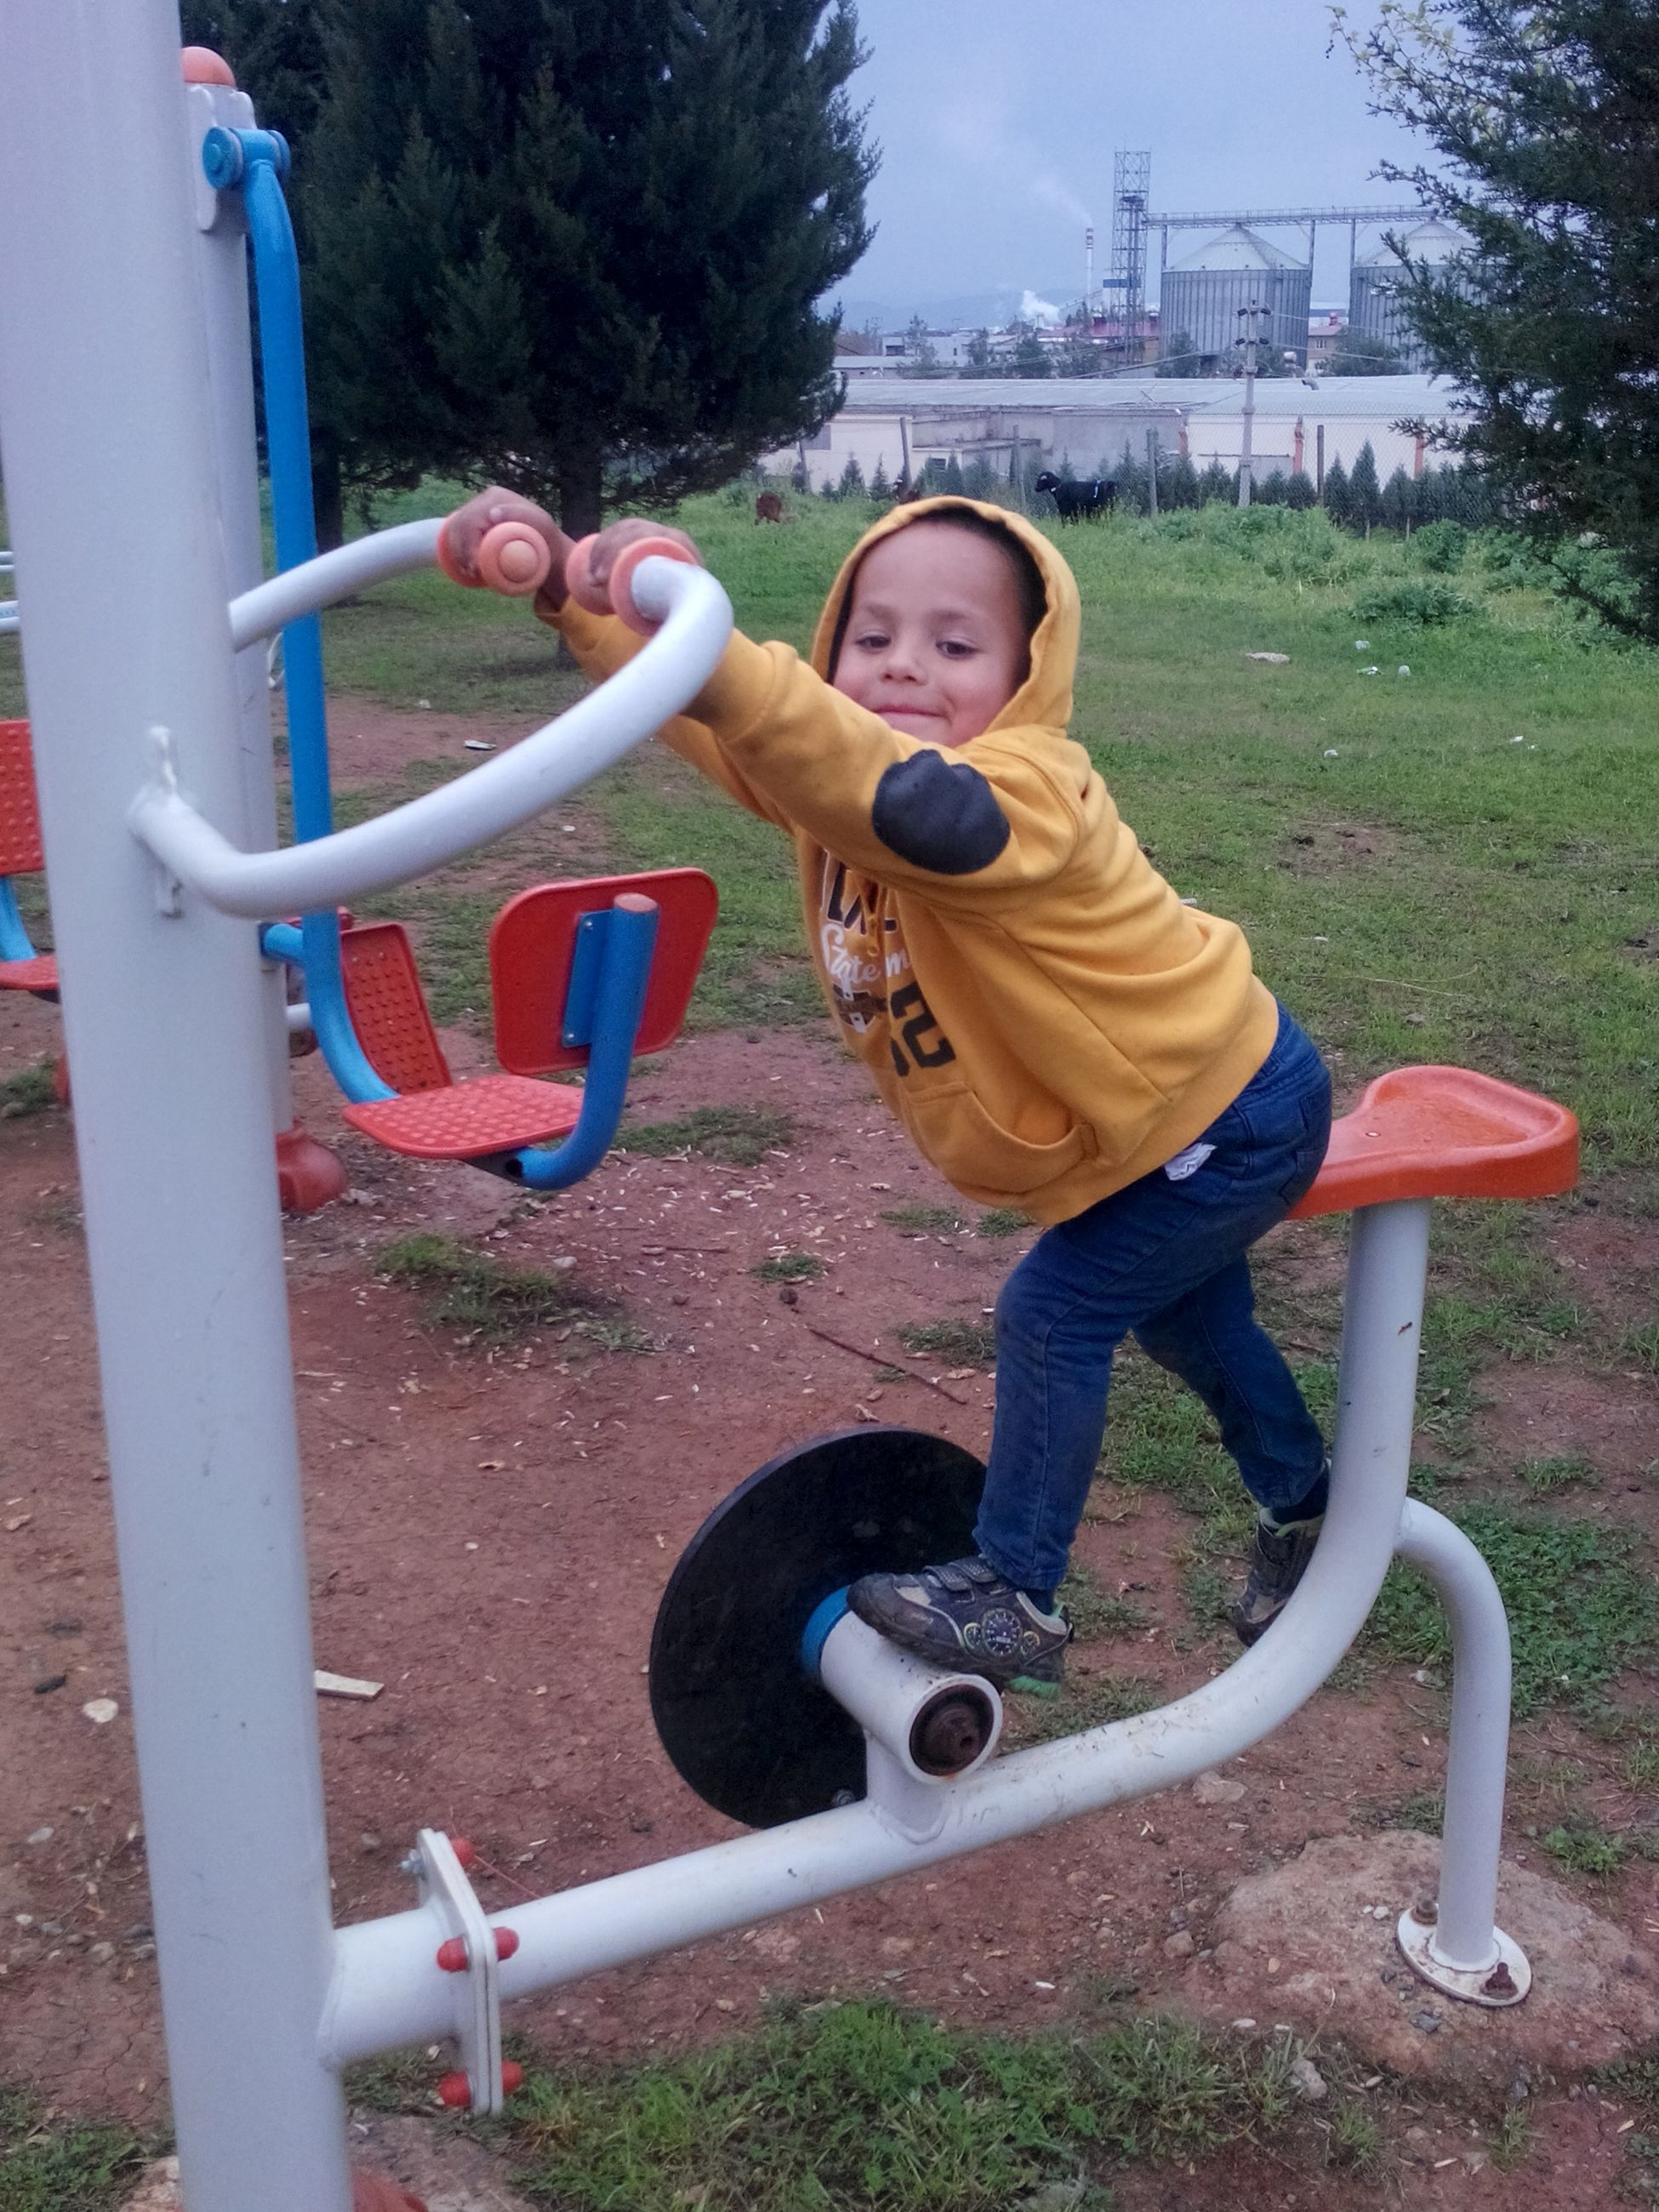 person, lifestyles, leisure activity, casual clothing, childhood, full length, happiness, elementary age, smiling, young adult, portrait, looking at camera, park - man made space, fun, playground, girls, enjoyment, front view